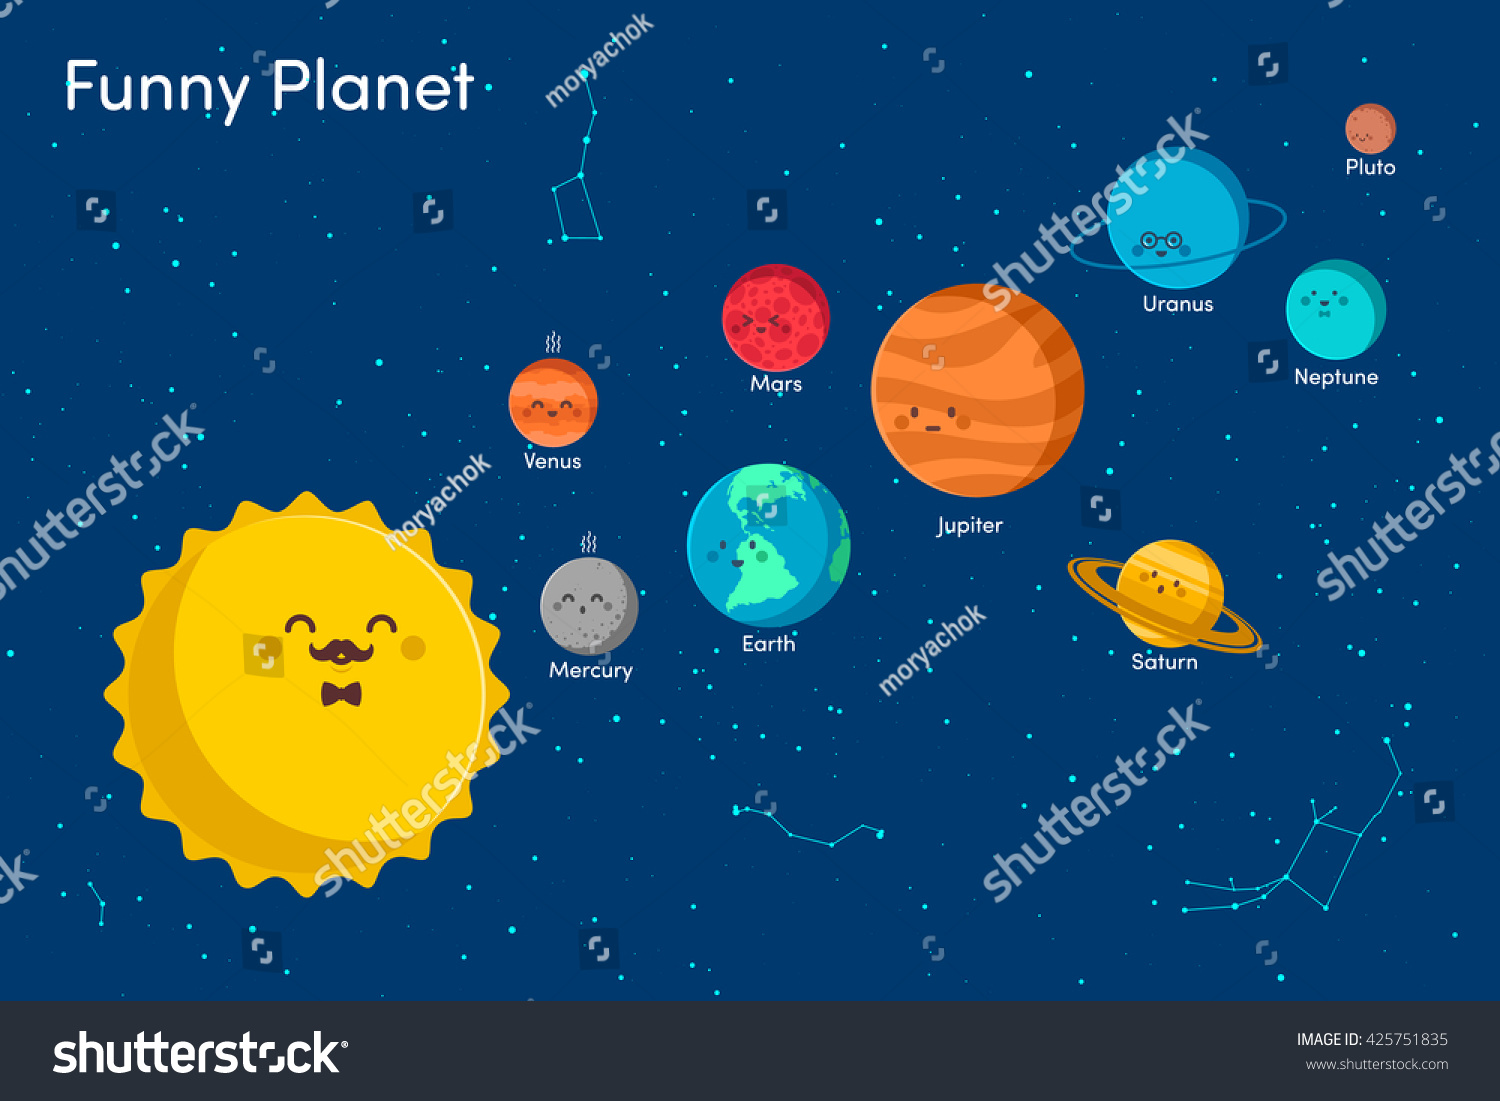 planets orbiting the sun wallpaper - photo #45